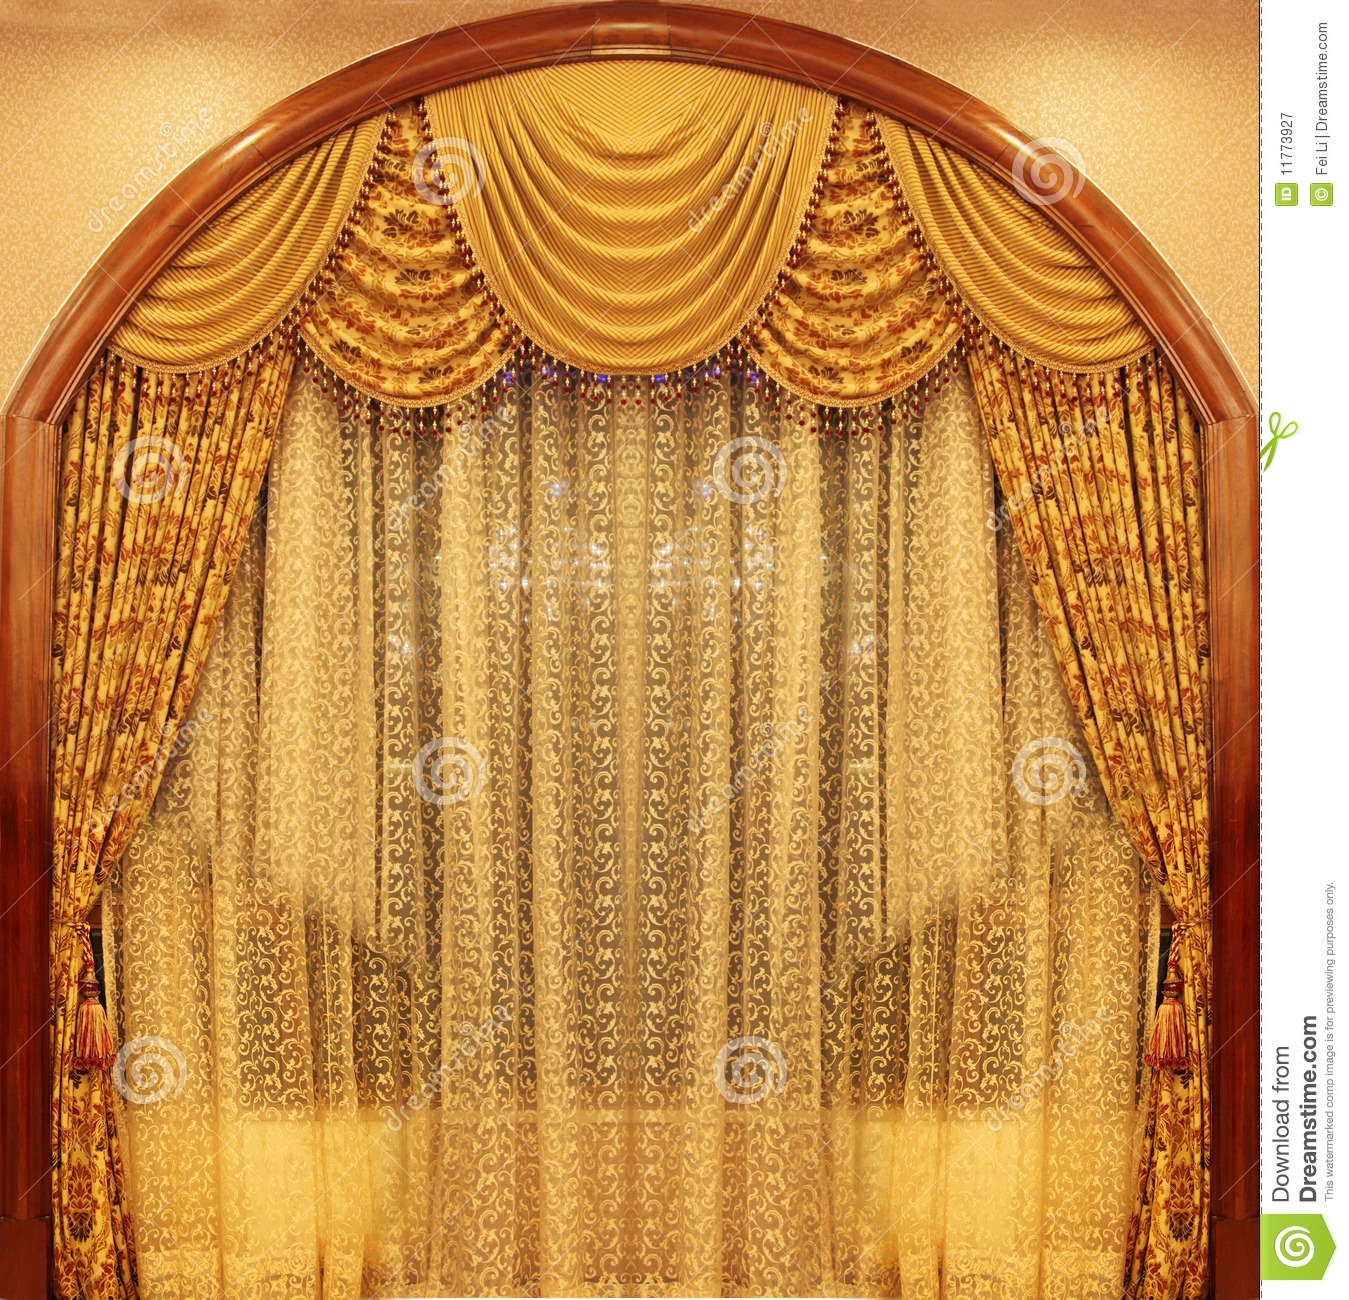 Yellow Velvet Theater Curtains Stock Image  Image of